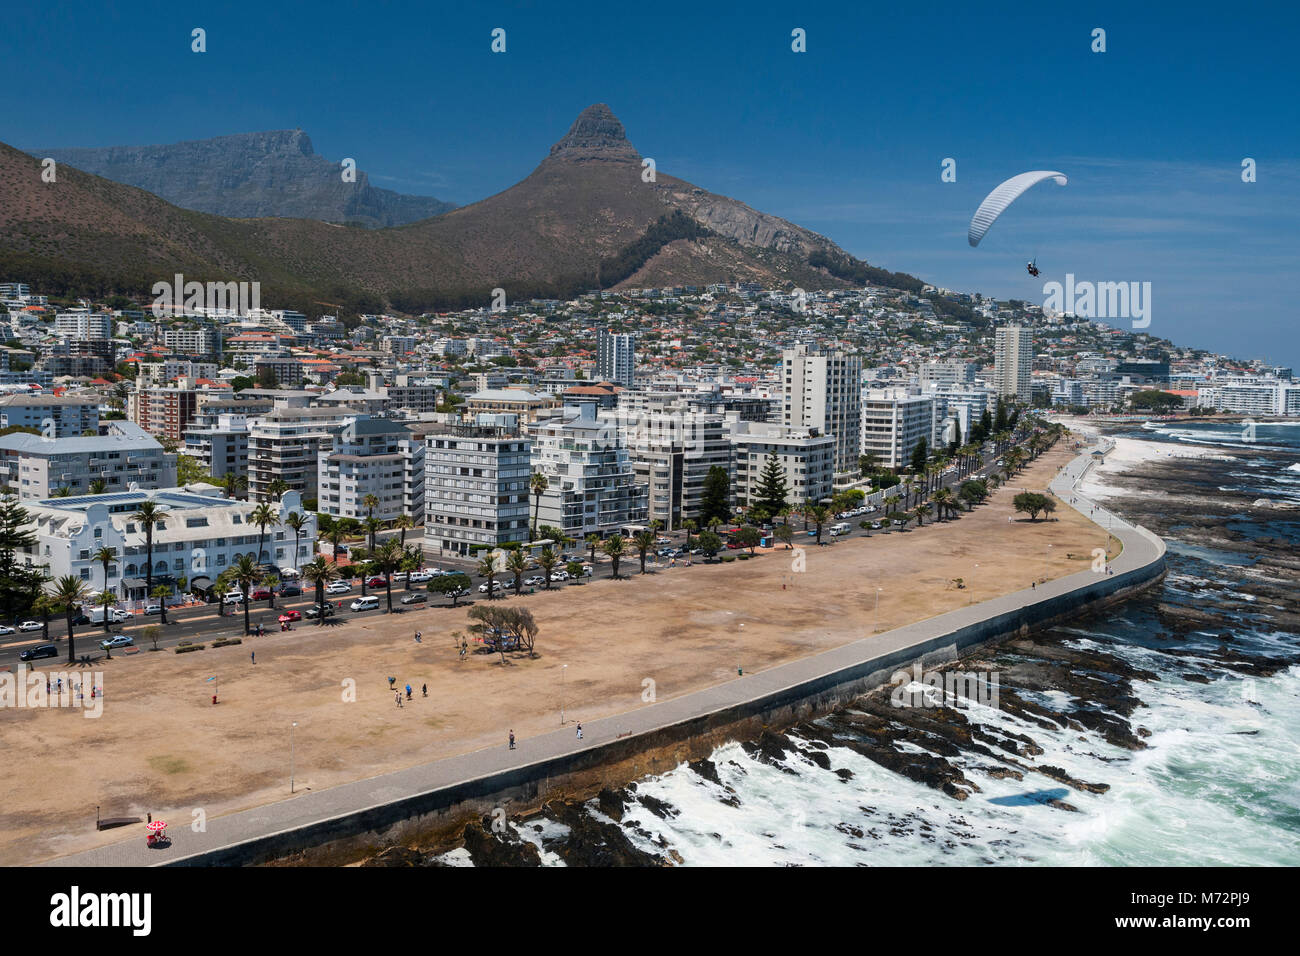 Tandem paraglider flying above Cape Town's Atlantic seaboard suburb of Sea Point with Table Mountain and Lion's - Stock Image